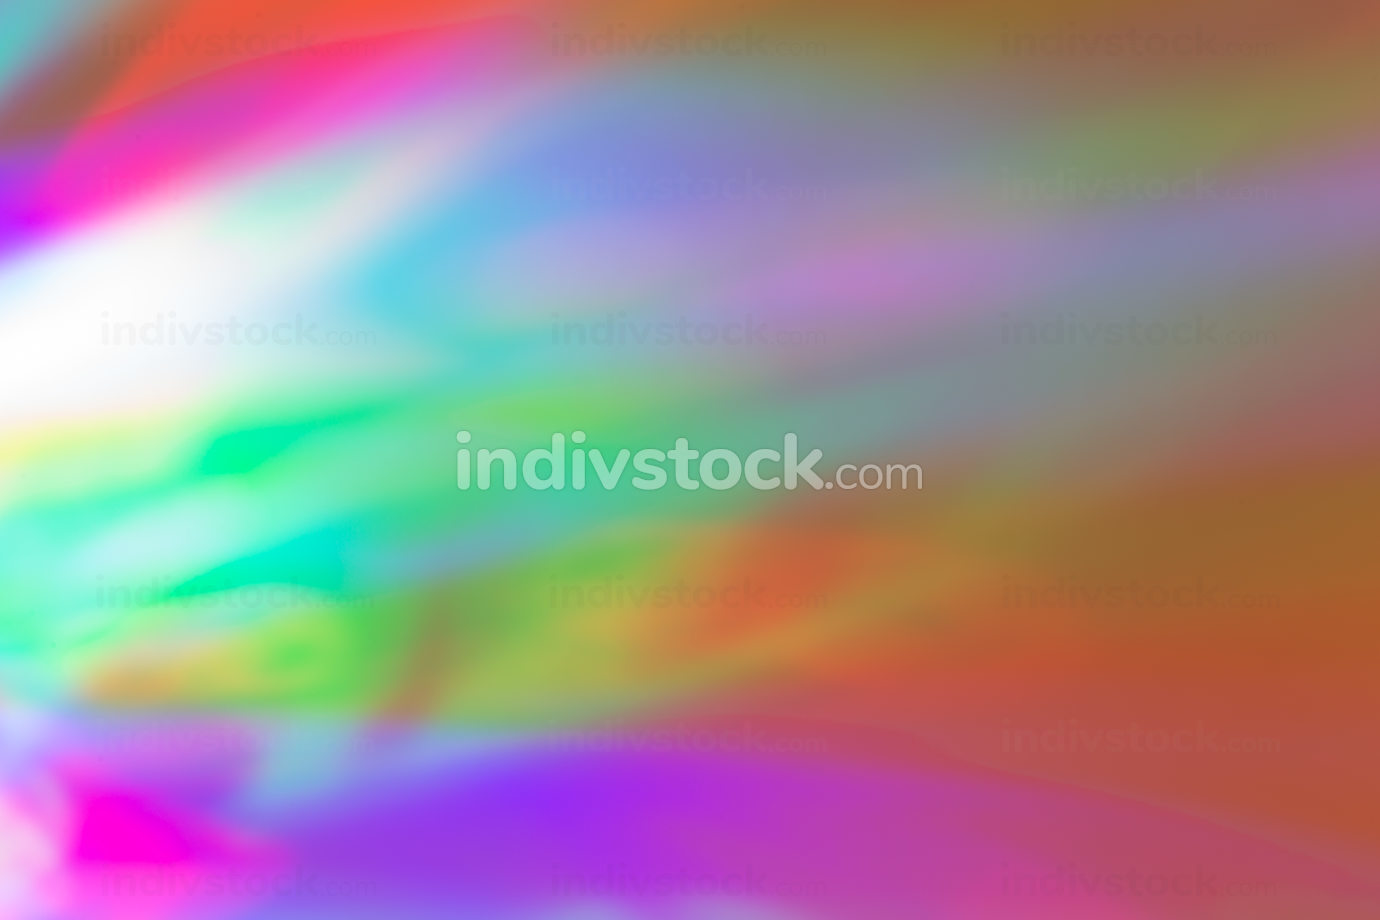 Backgrounds made of different colored lighting effects